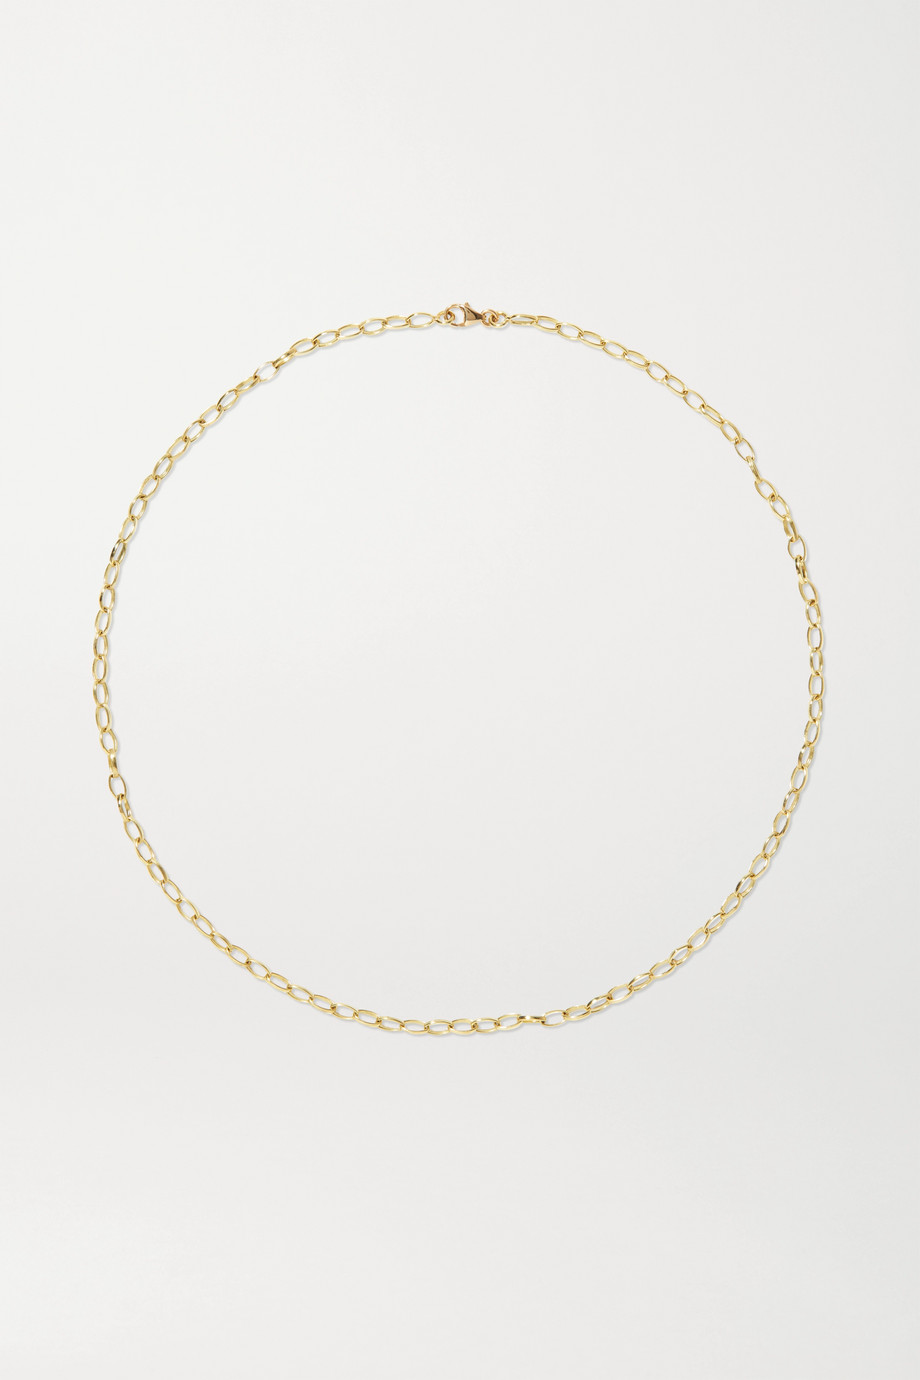 JENNIFER MEYER Edith small 18-karat gold necklace